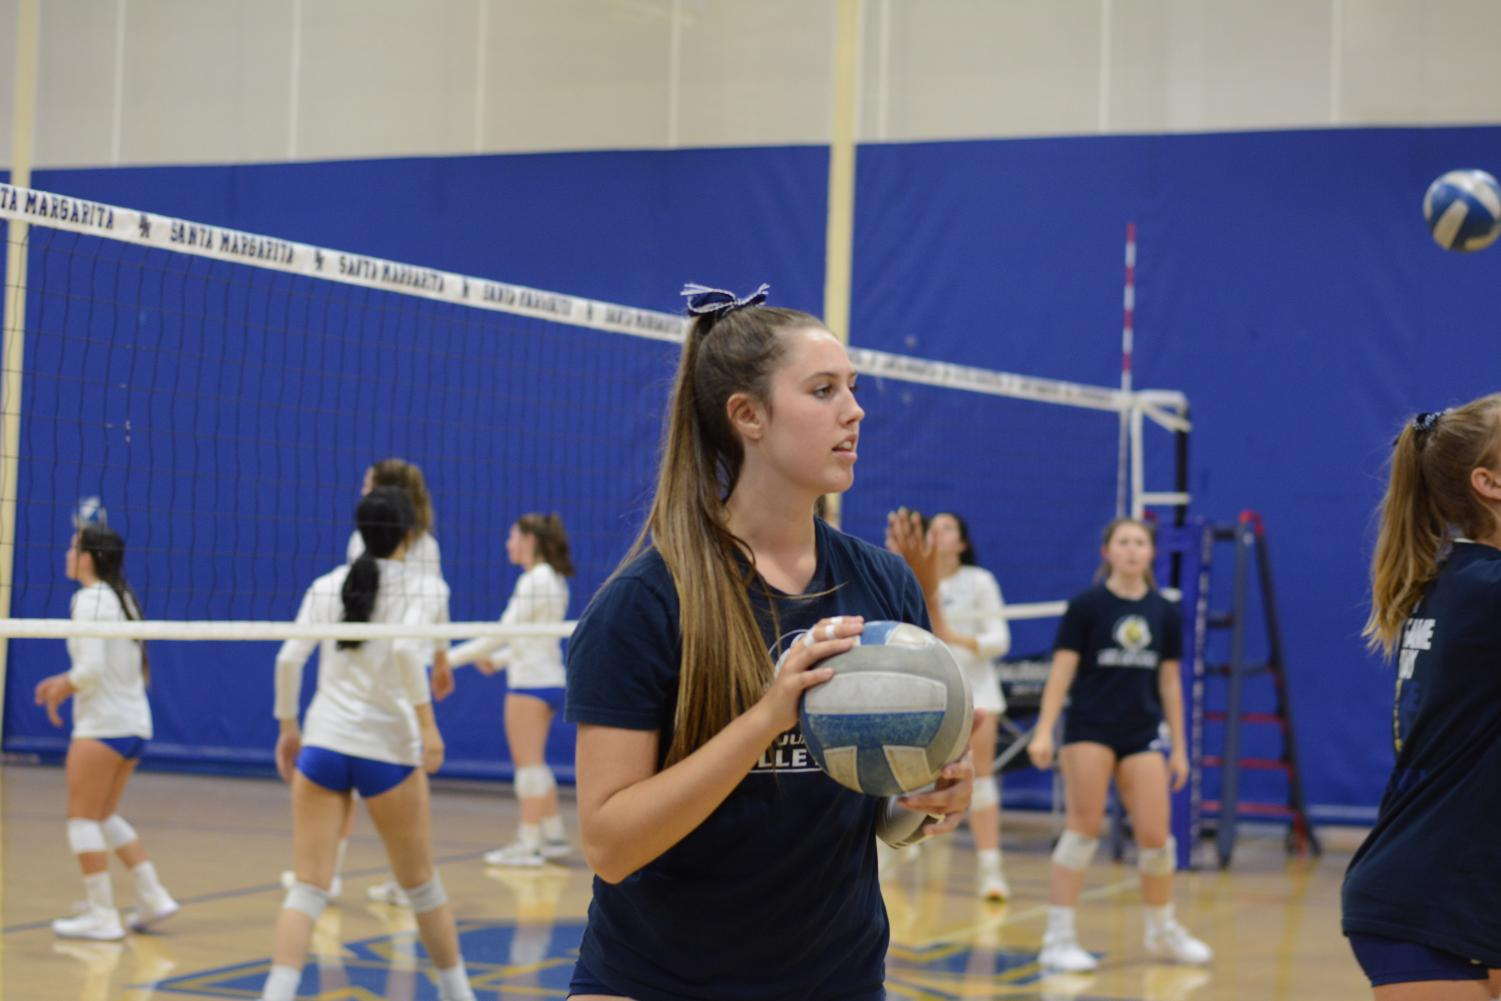 Cat Conlisk (12), practices with teammates at an away game against Santa Margarita high school. Just weeks ago, Conlisk committed to Seattle University, where she will continue pursuing volleyball with a brand new group of players.